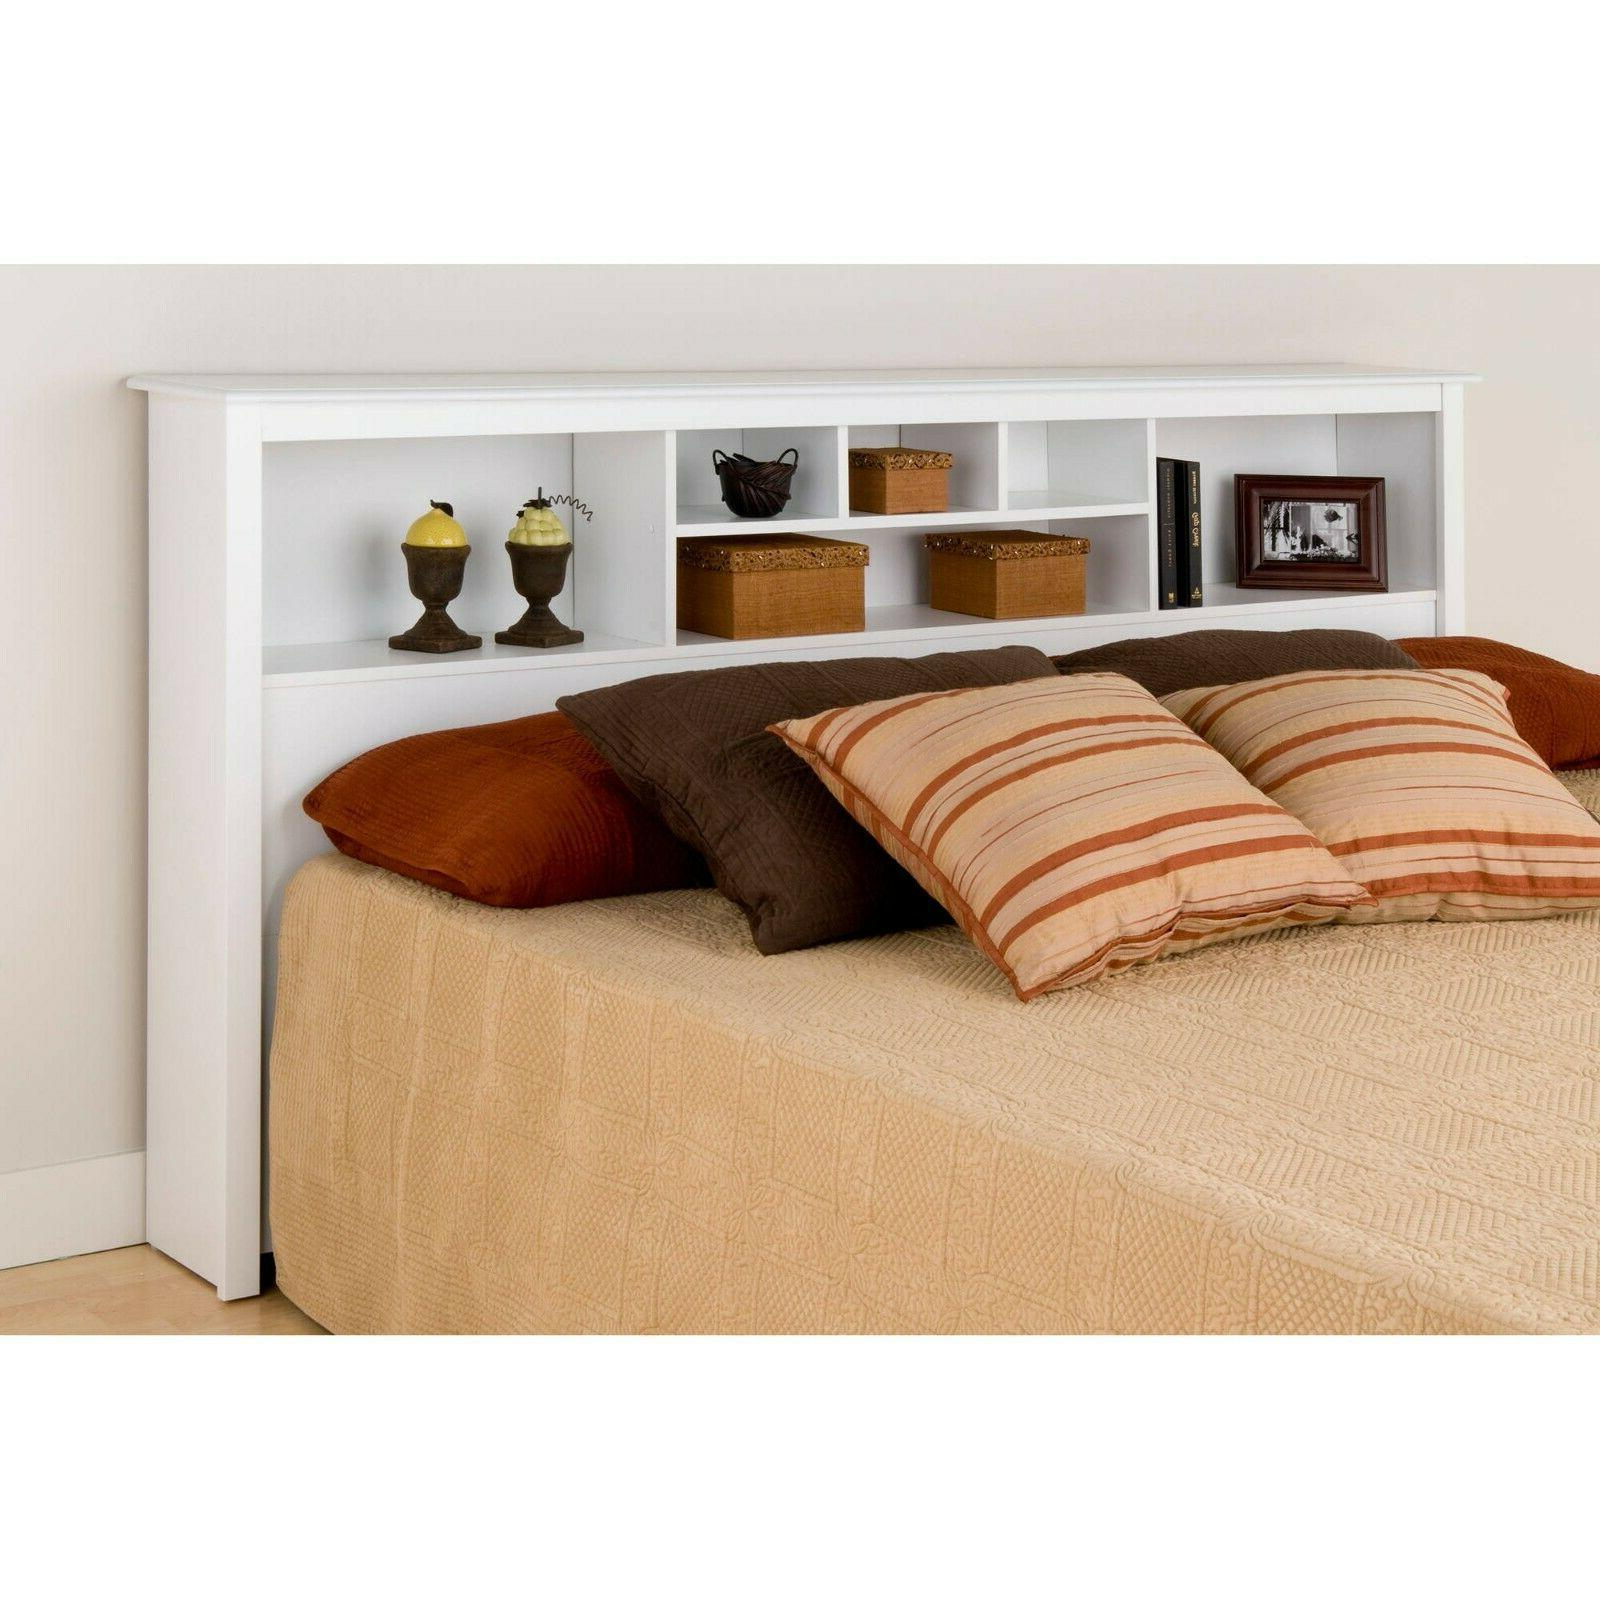 King Size Bed Headboard Free Standing Storage Compartments B